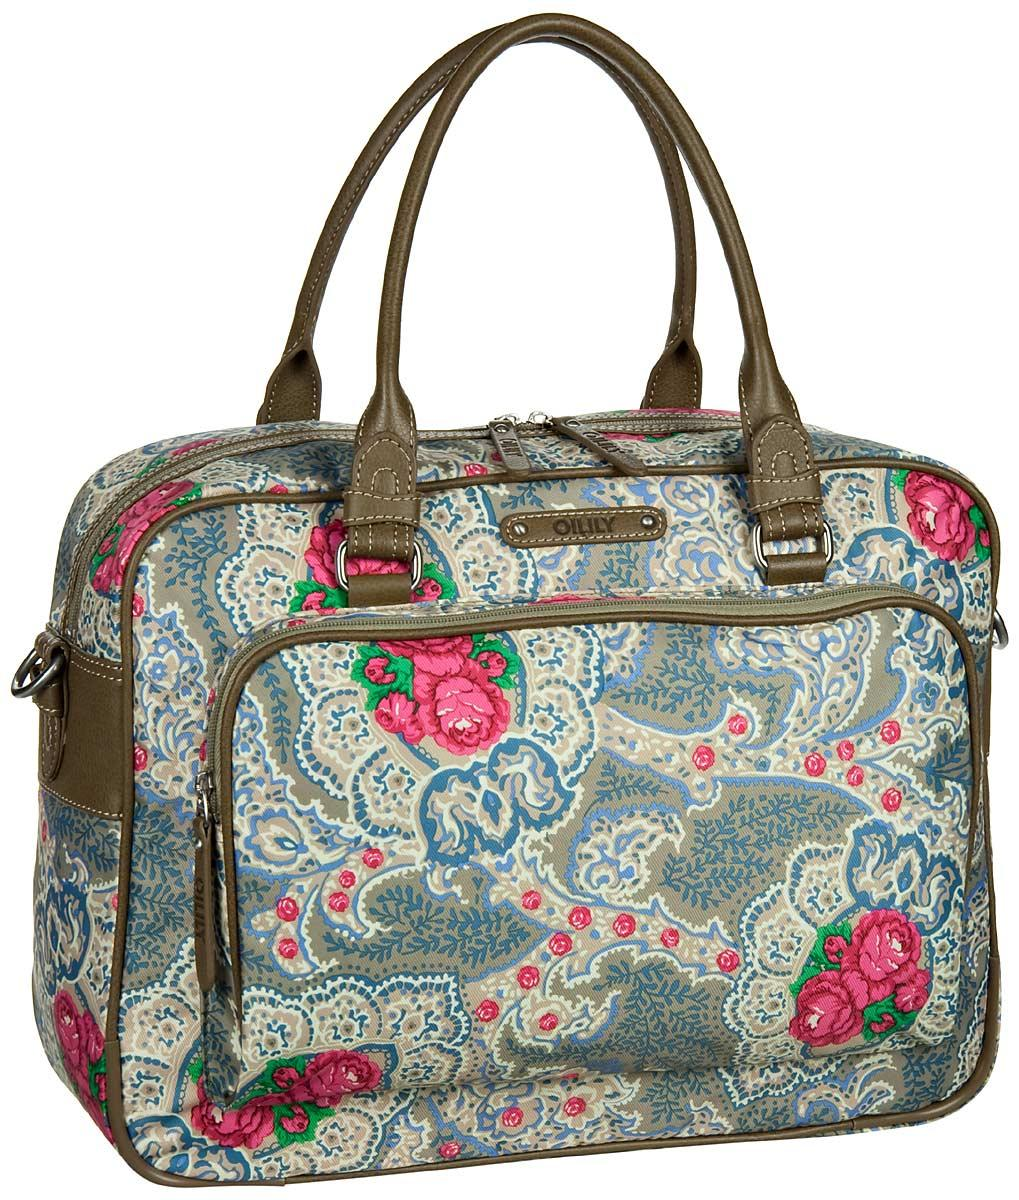 Apron-Office-Bag-Oilily-1817106578-Khaki.jpg